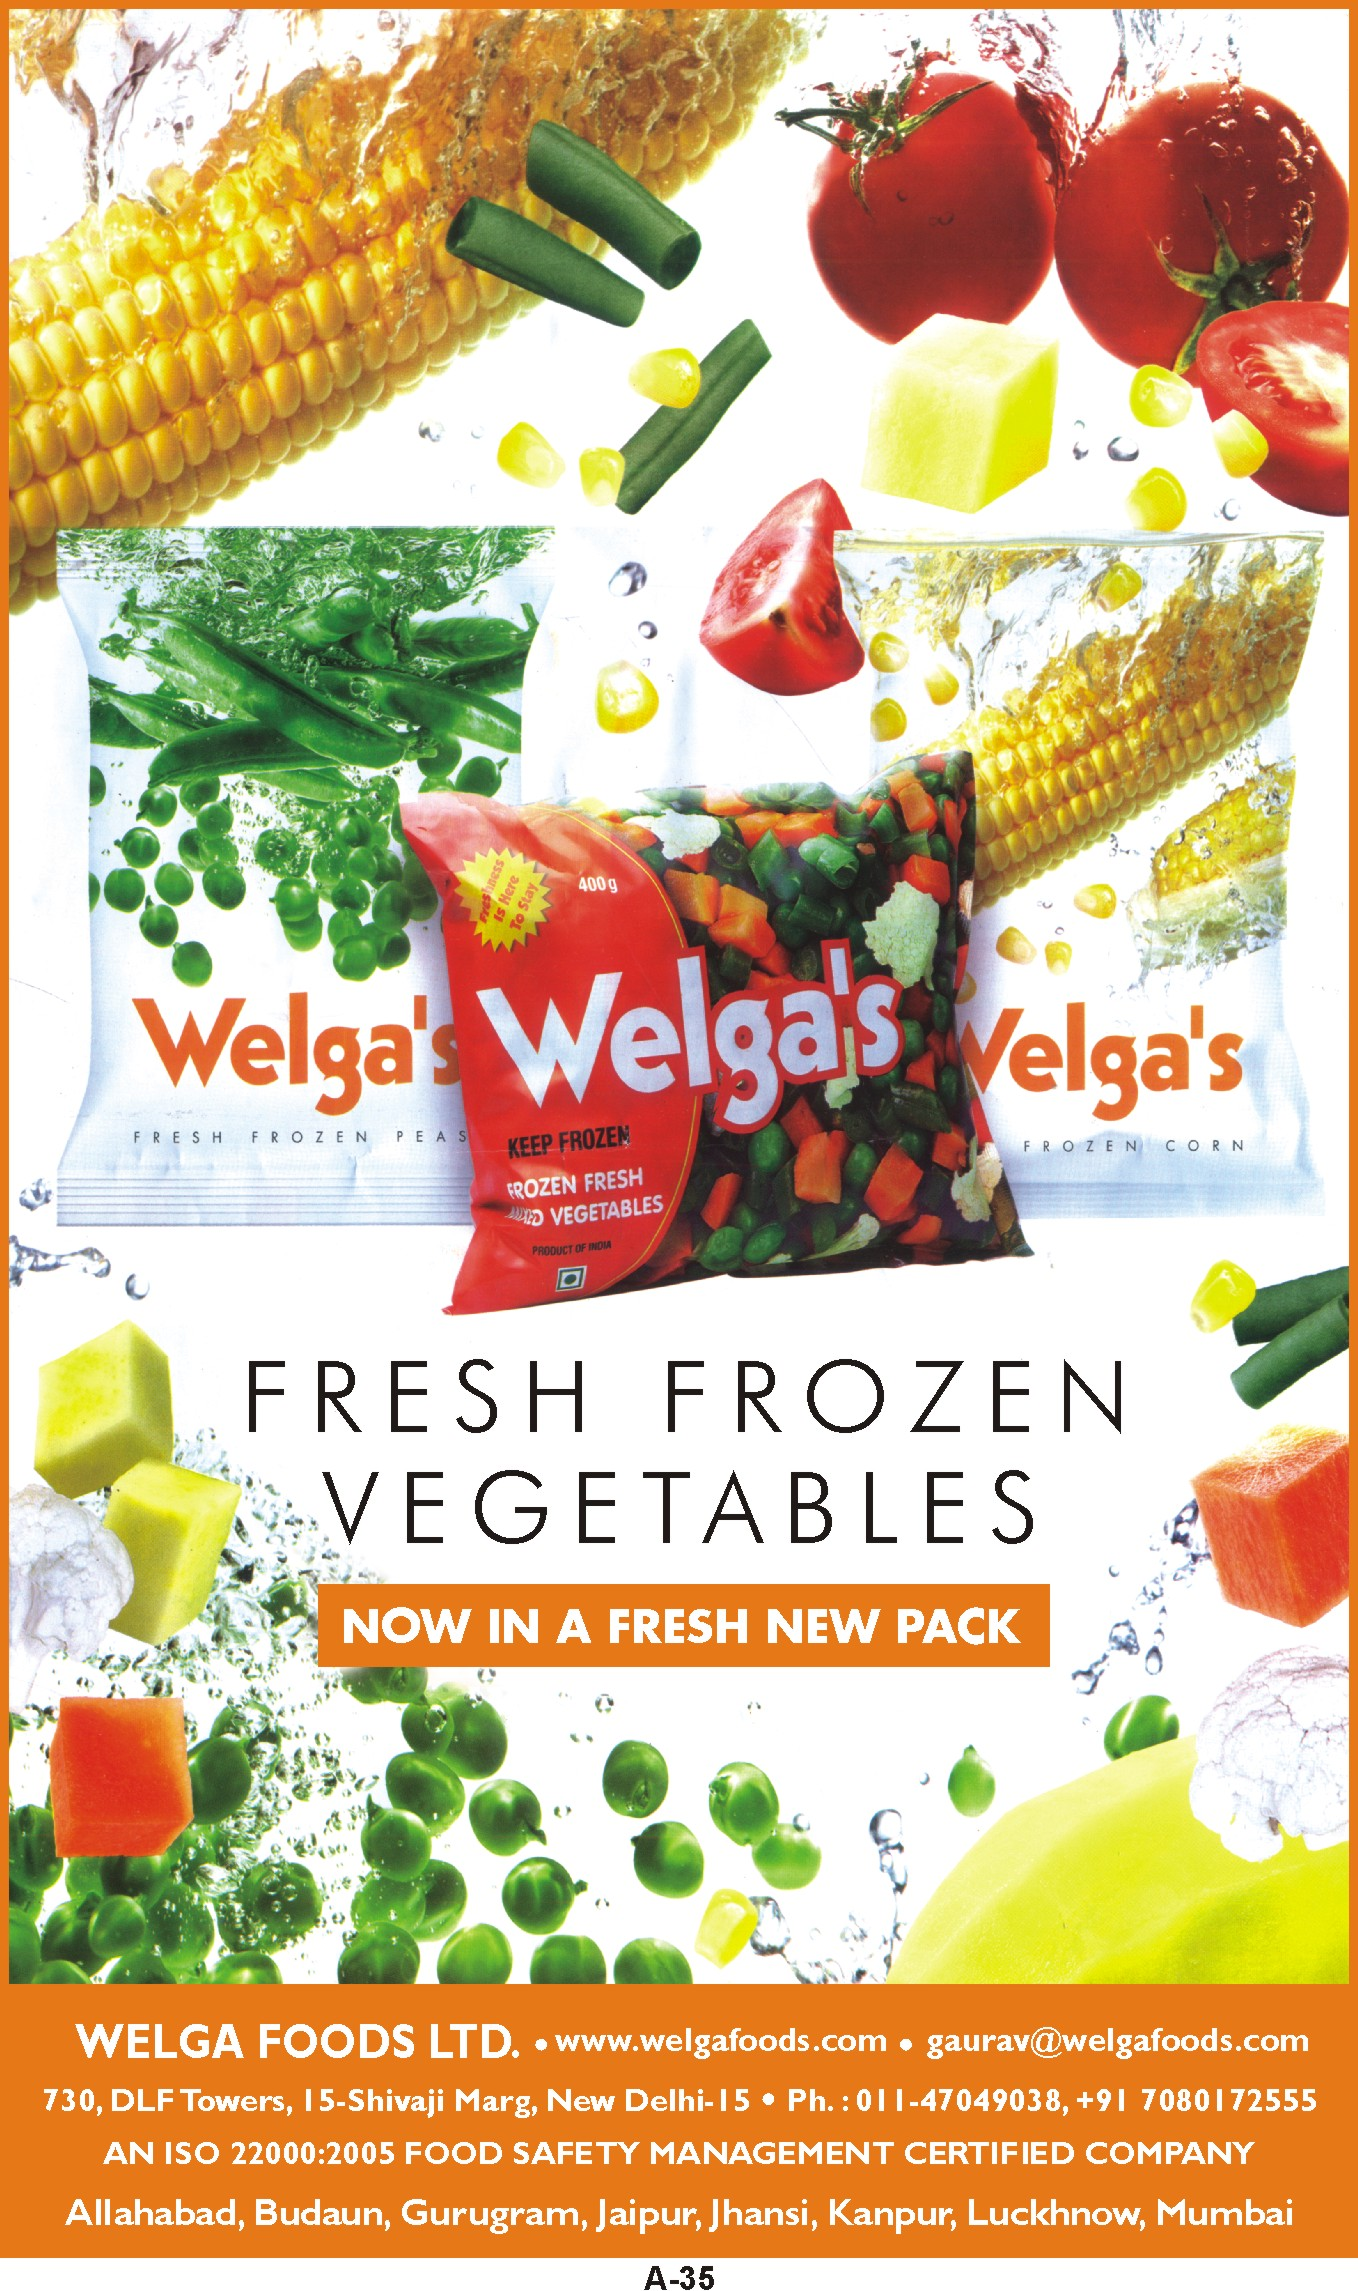 WELGA FOODS LTD.